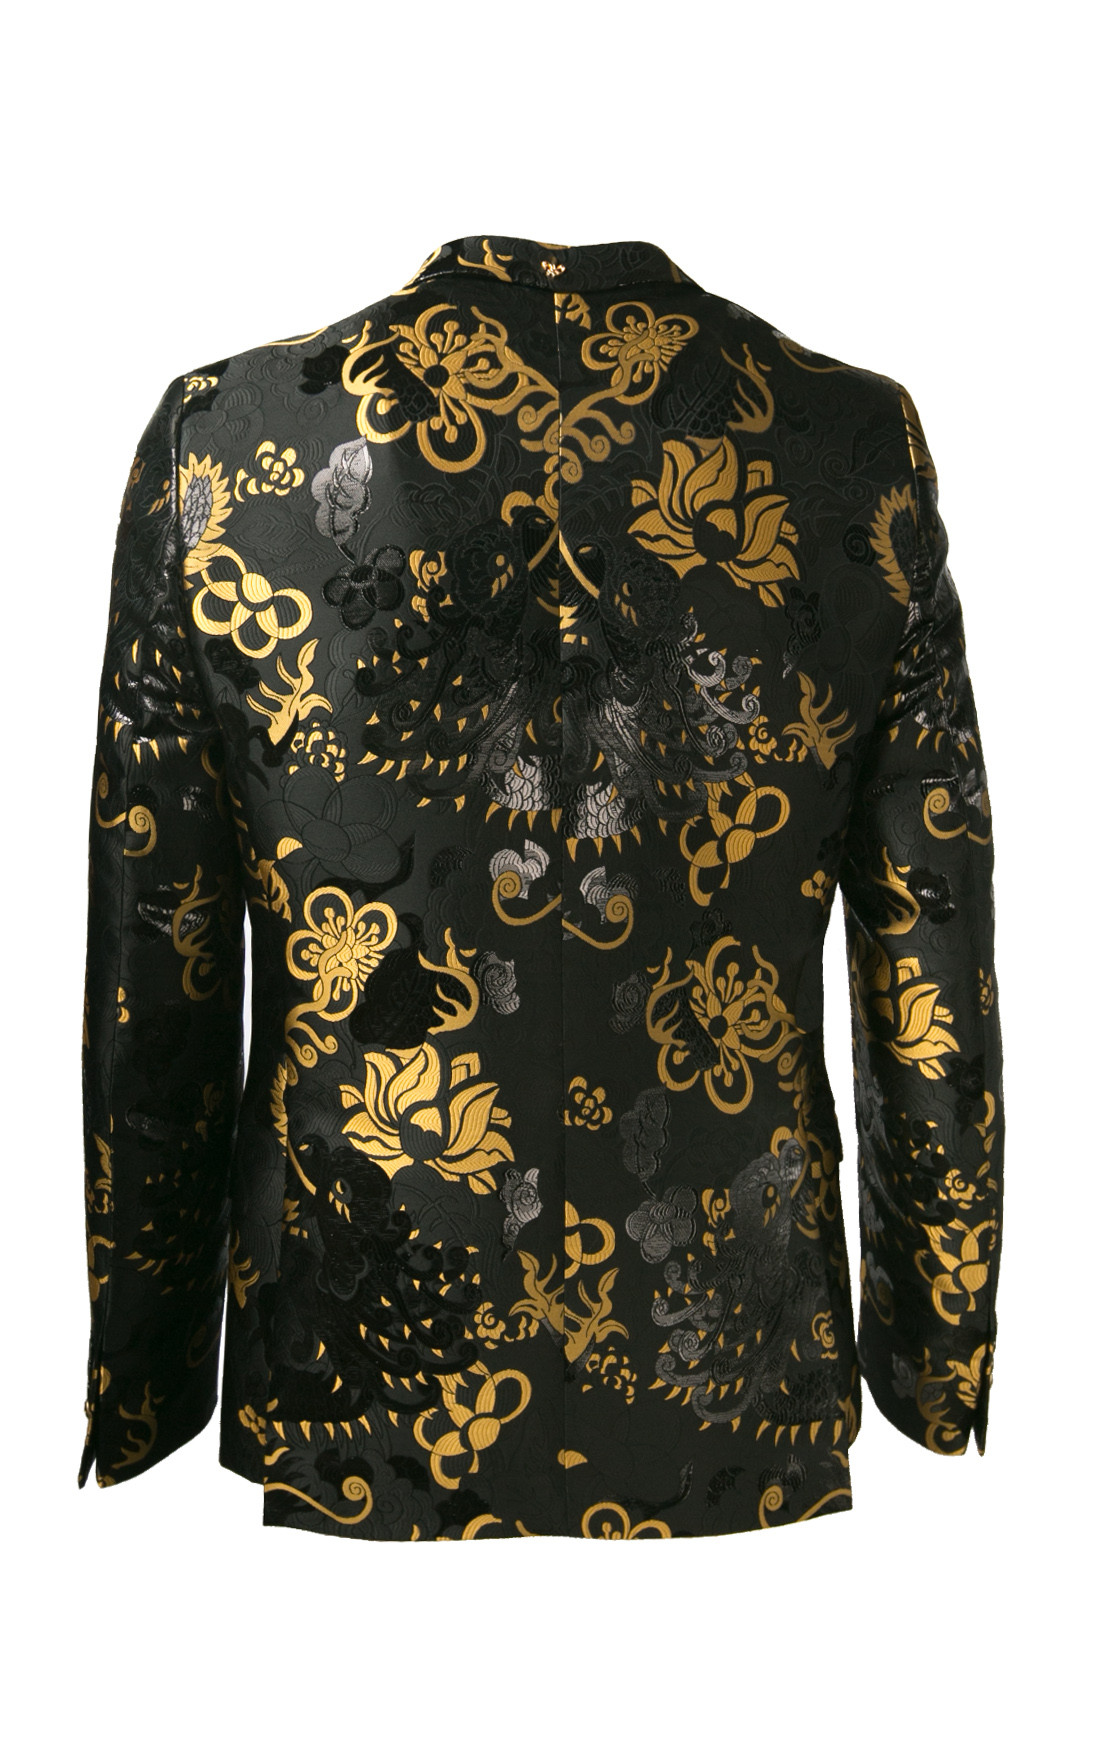 Lords and Fools - Pic Black Floral Blazer Jacket (W19/PIC/24518)